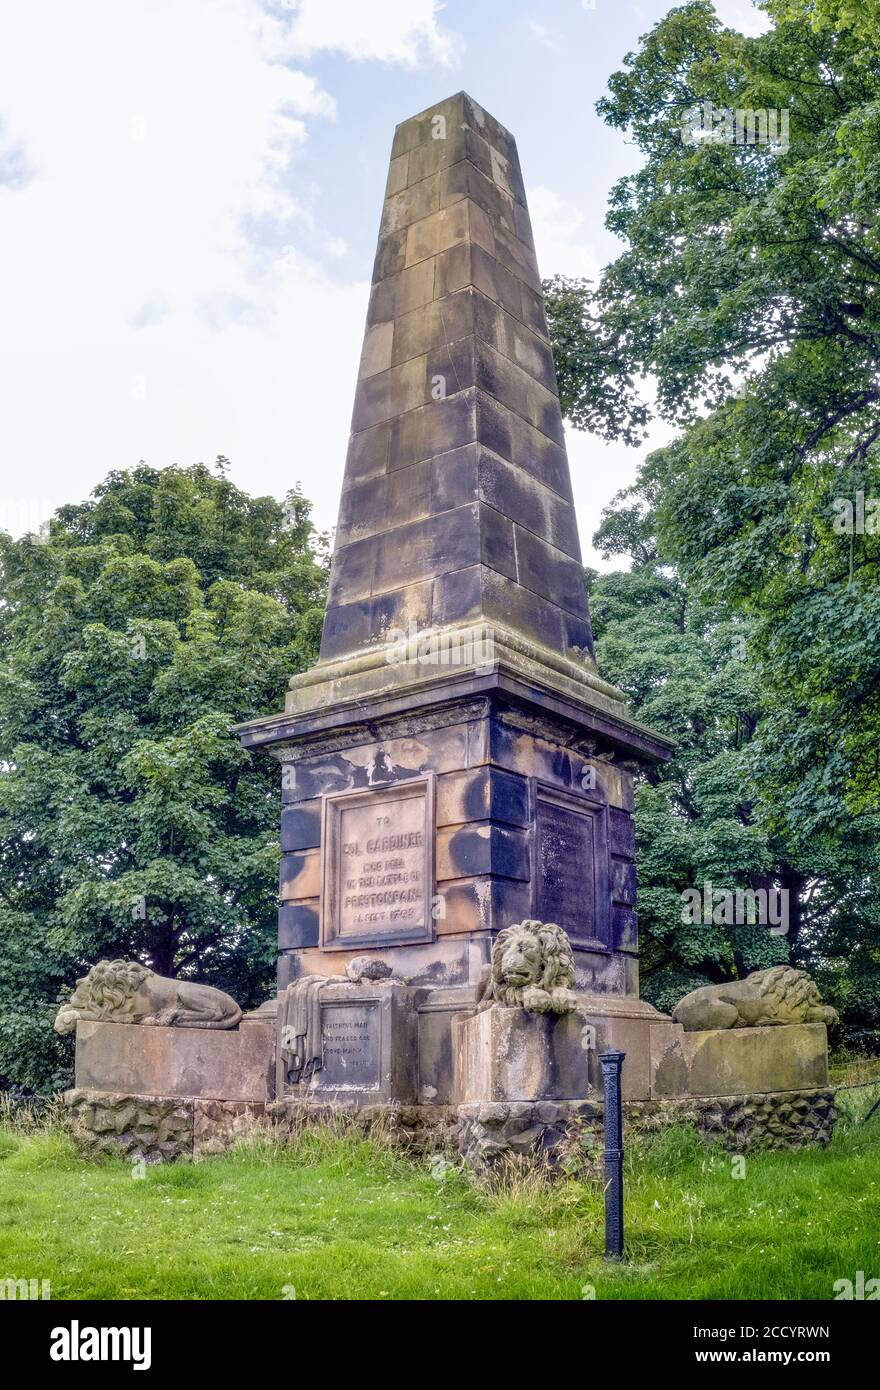 Memorial to Colonel James Gardiner who died at the Battle of Prestonpans, East Lothian, Scotland, UK. Stock Photo